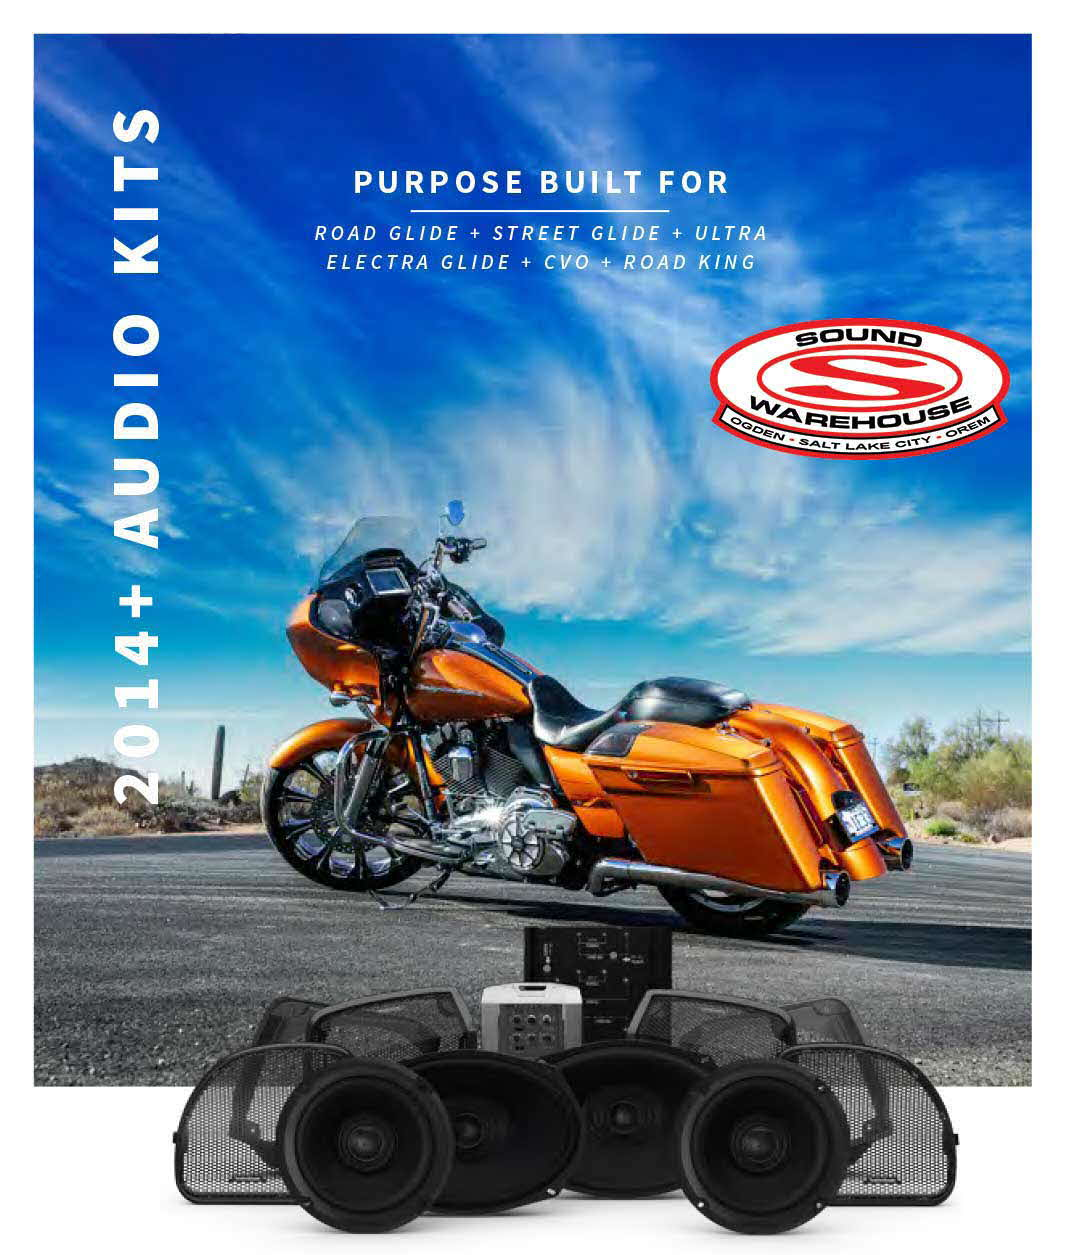 2020-Harley-Davidson-Sales-Guide_lores-1